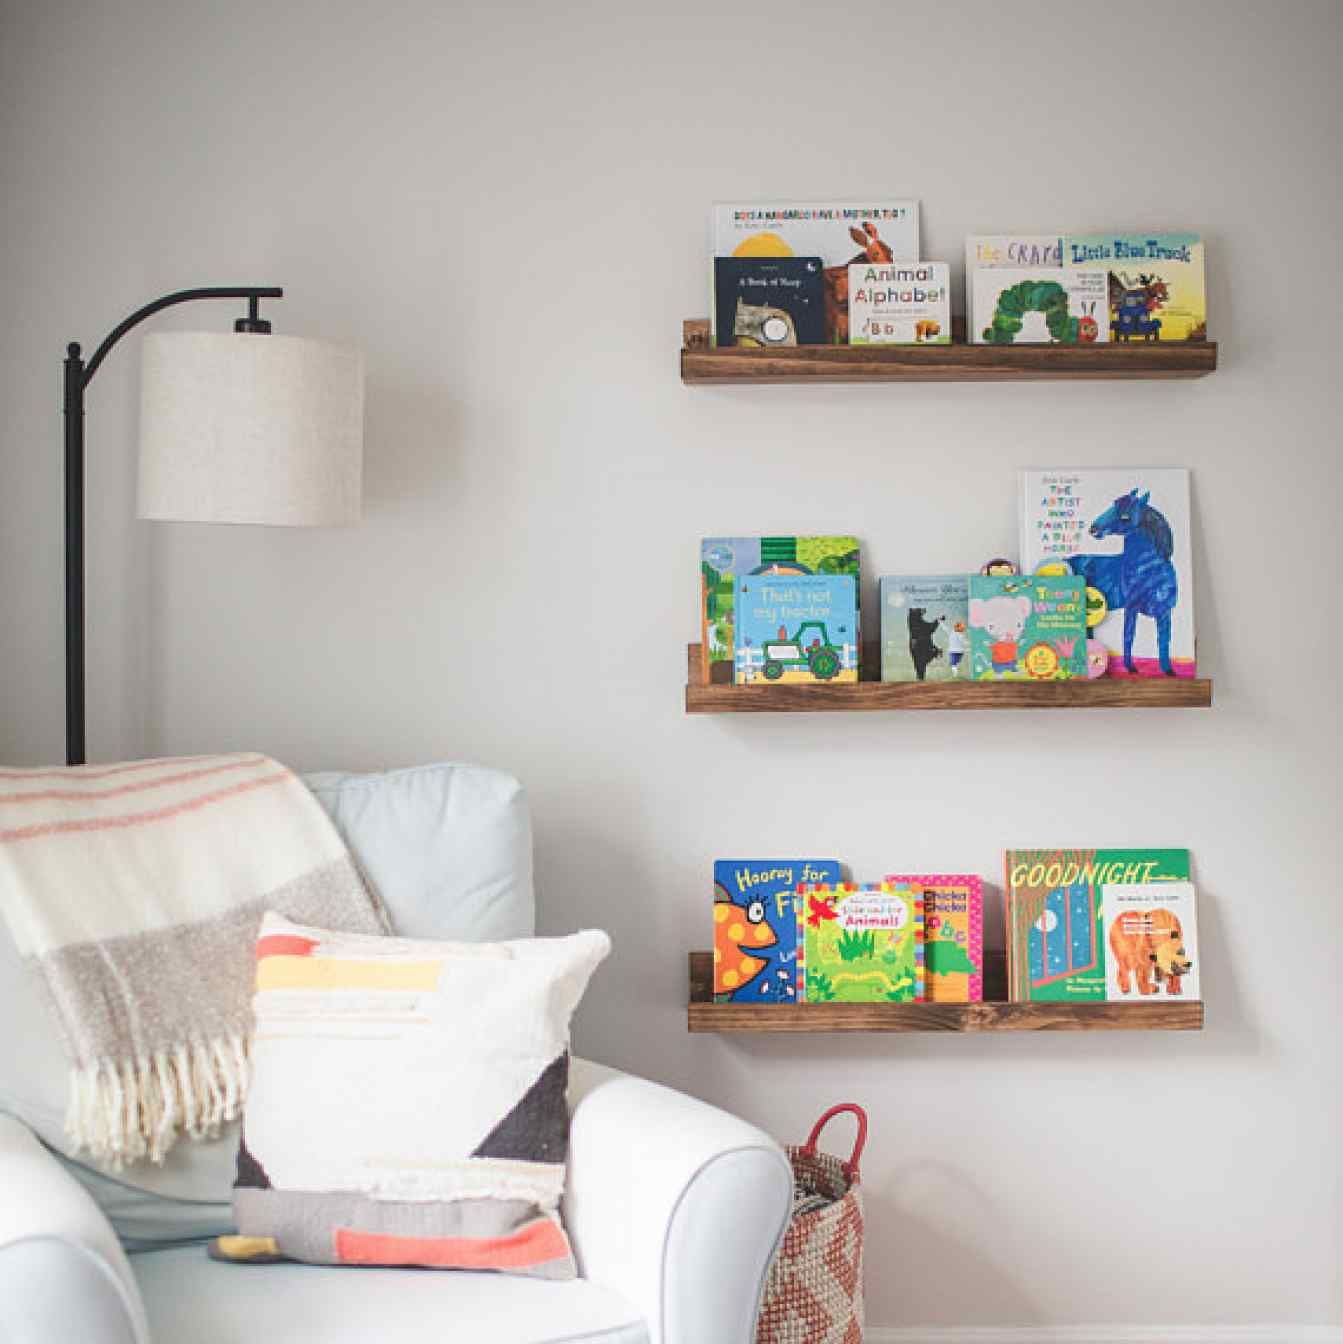 Charmant 12 Stylish Storage Solutions For All Your Kidsu0027 Toys + Books